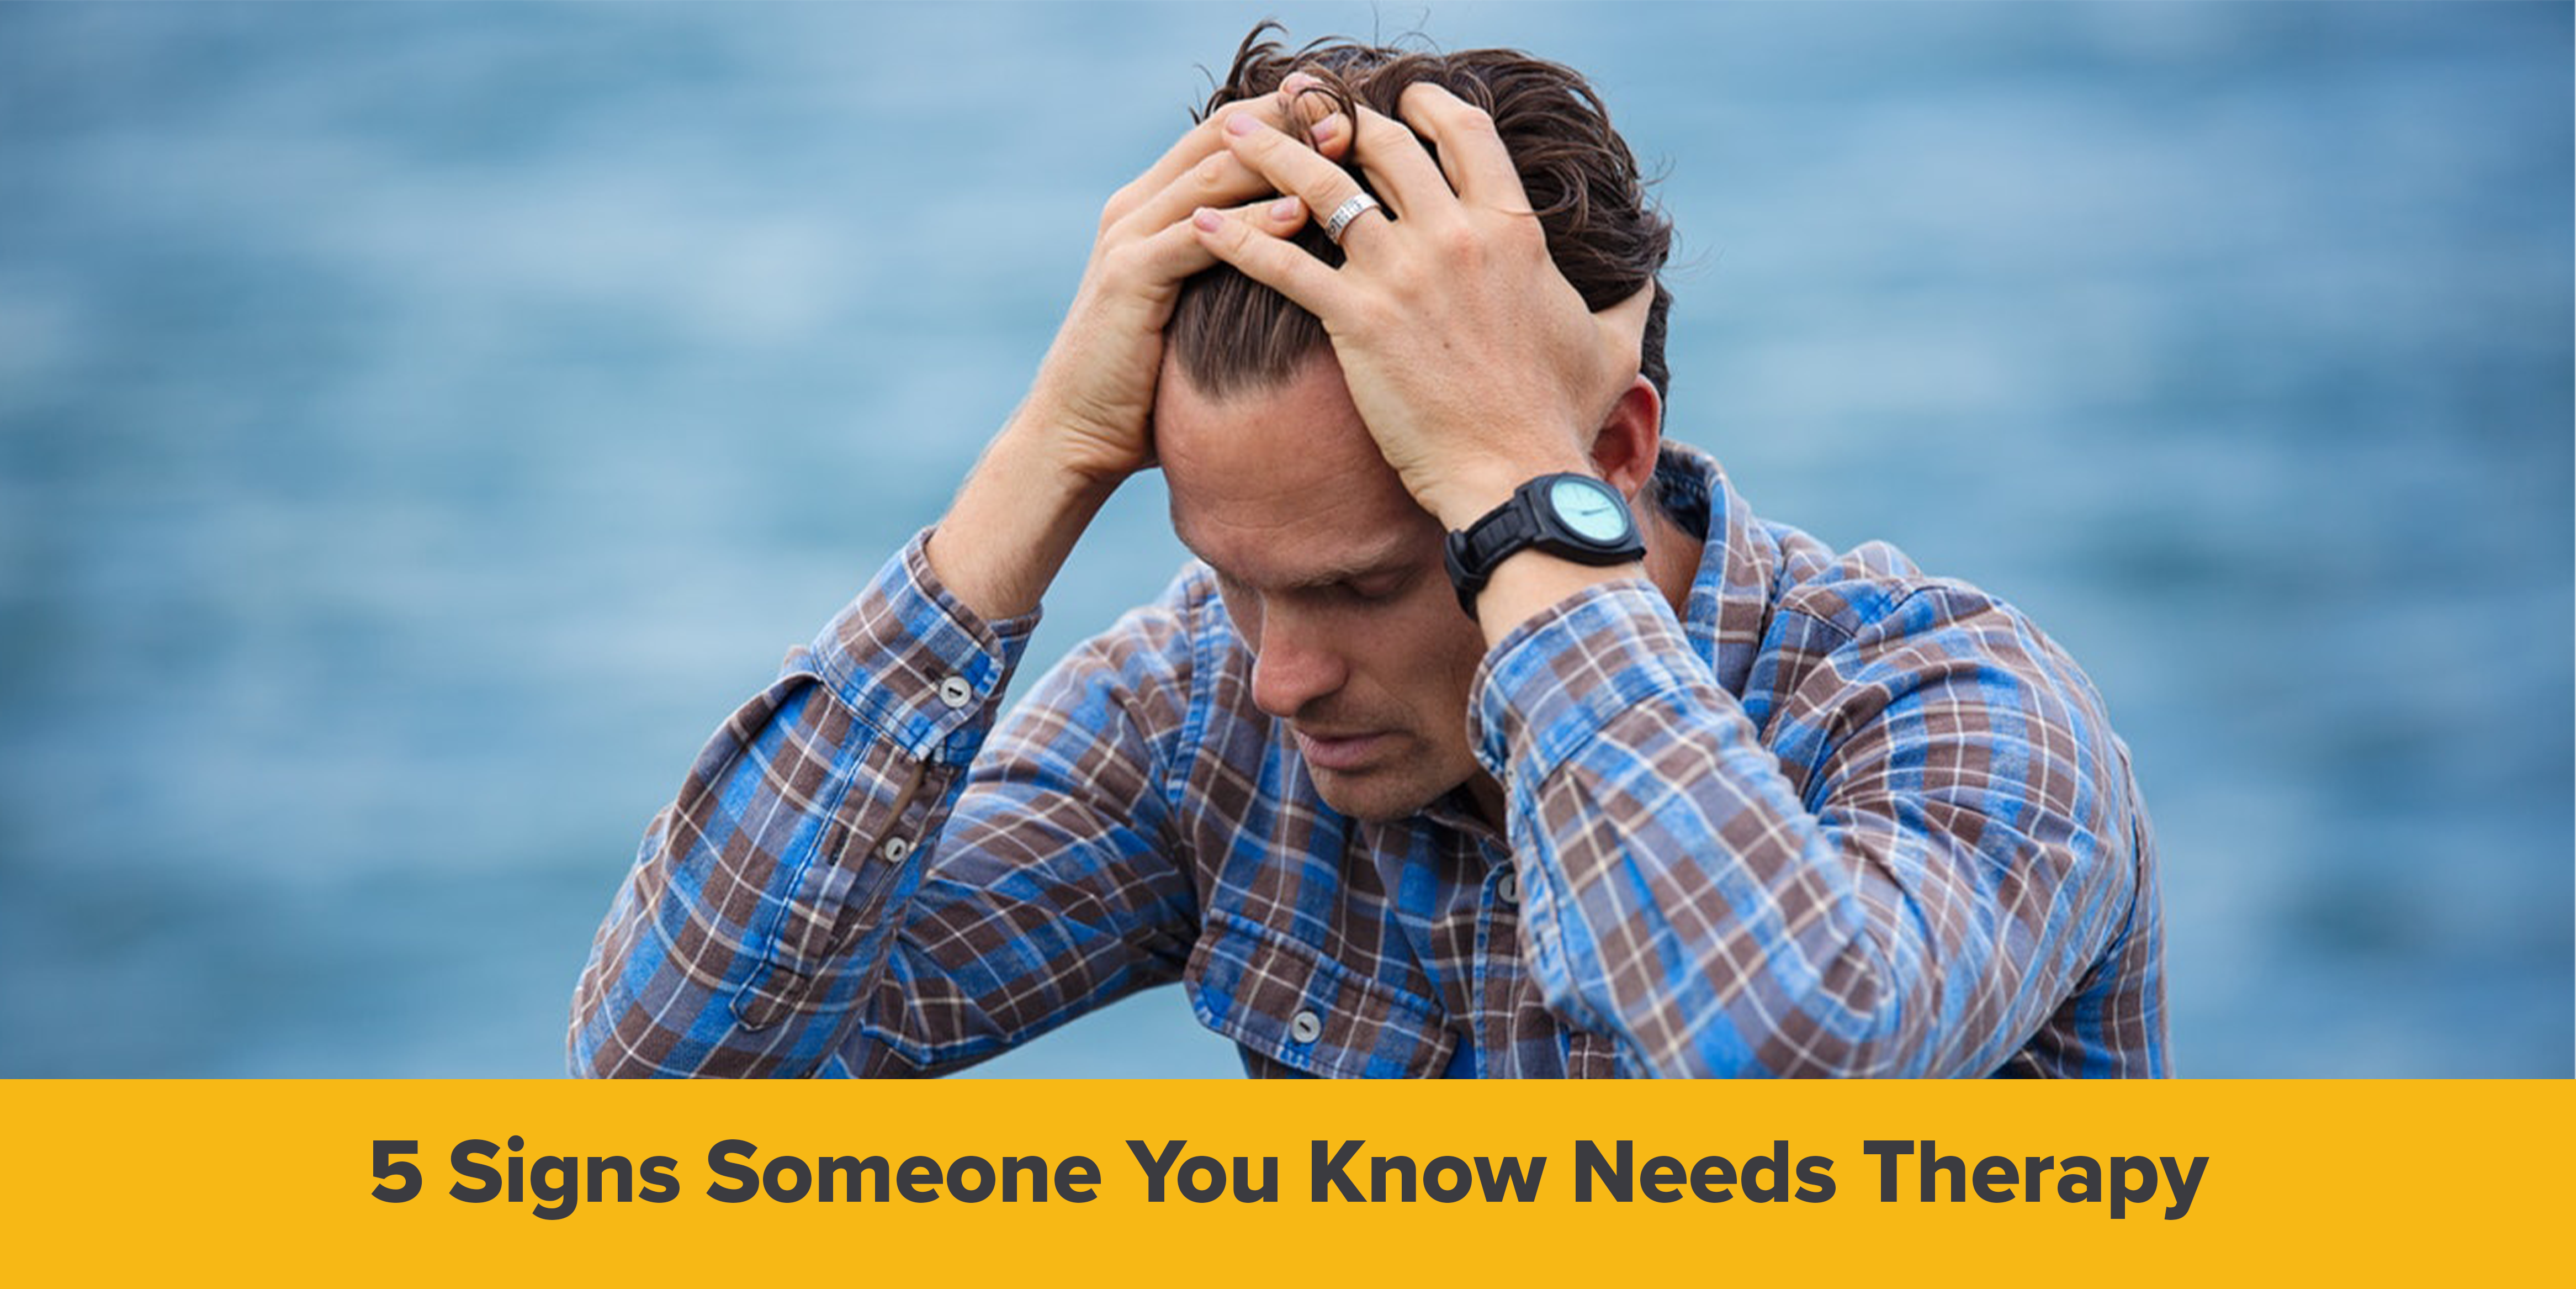 5 Signs Someone You Know Needs Therapy